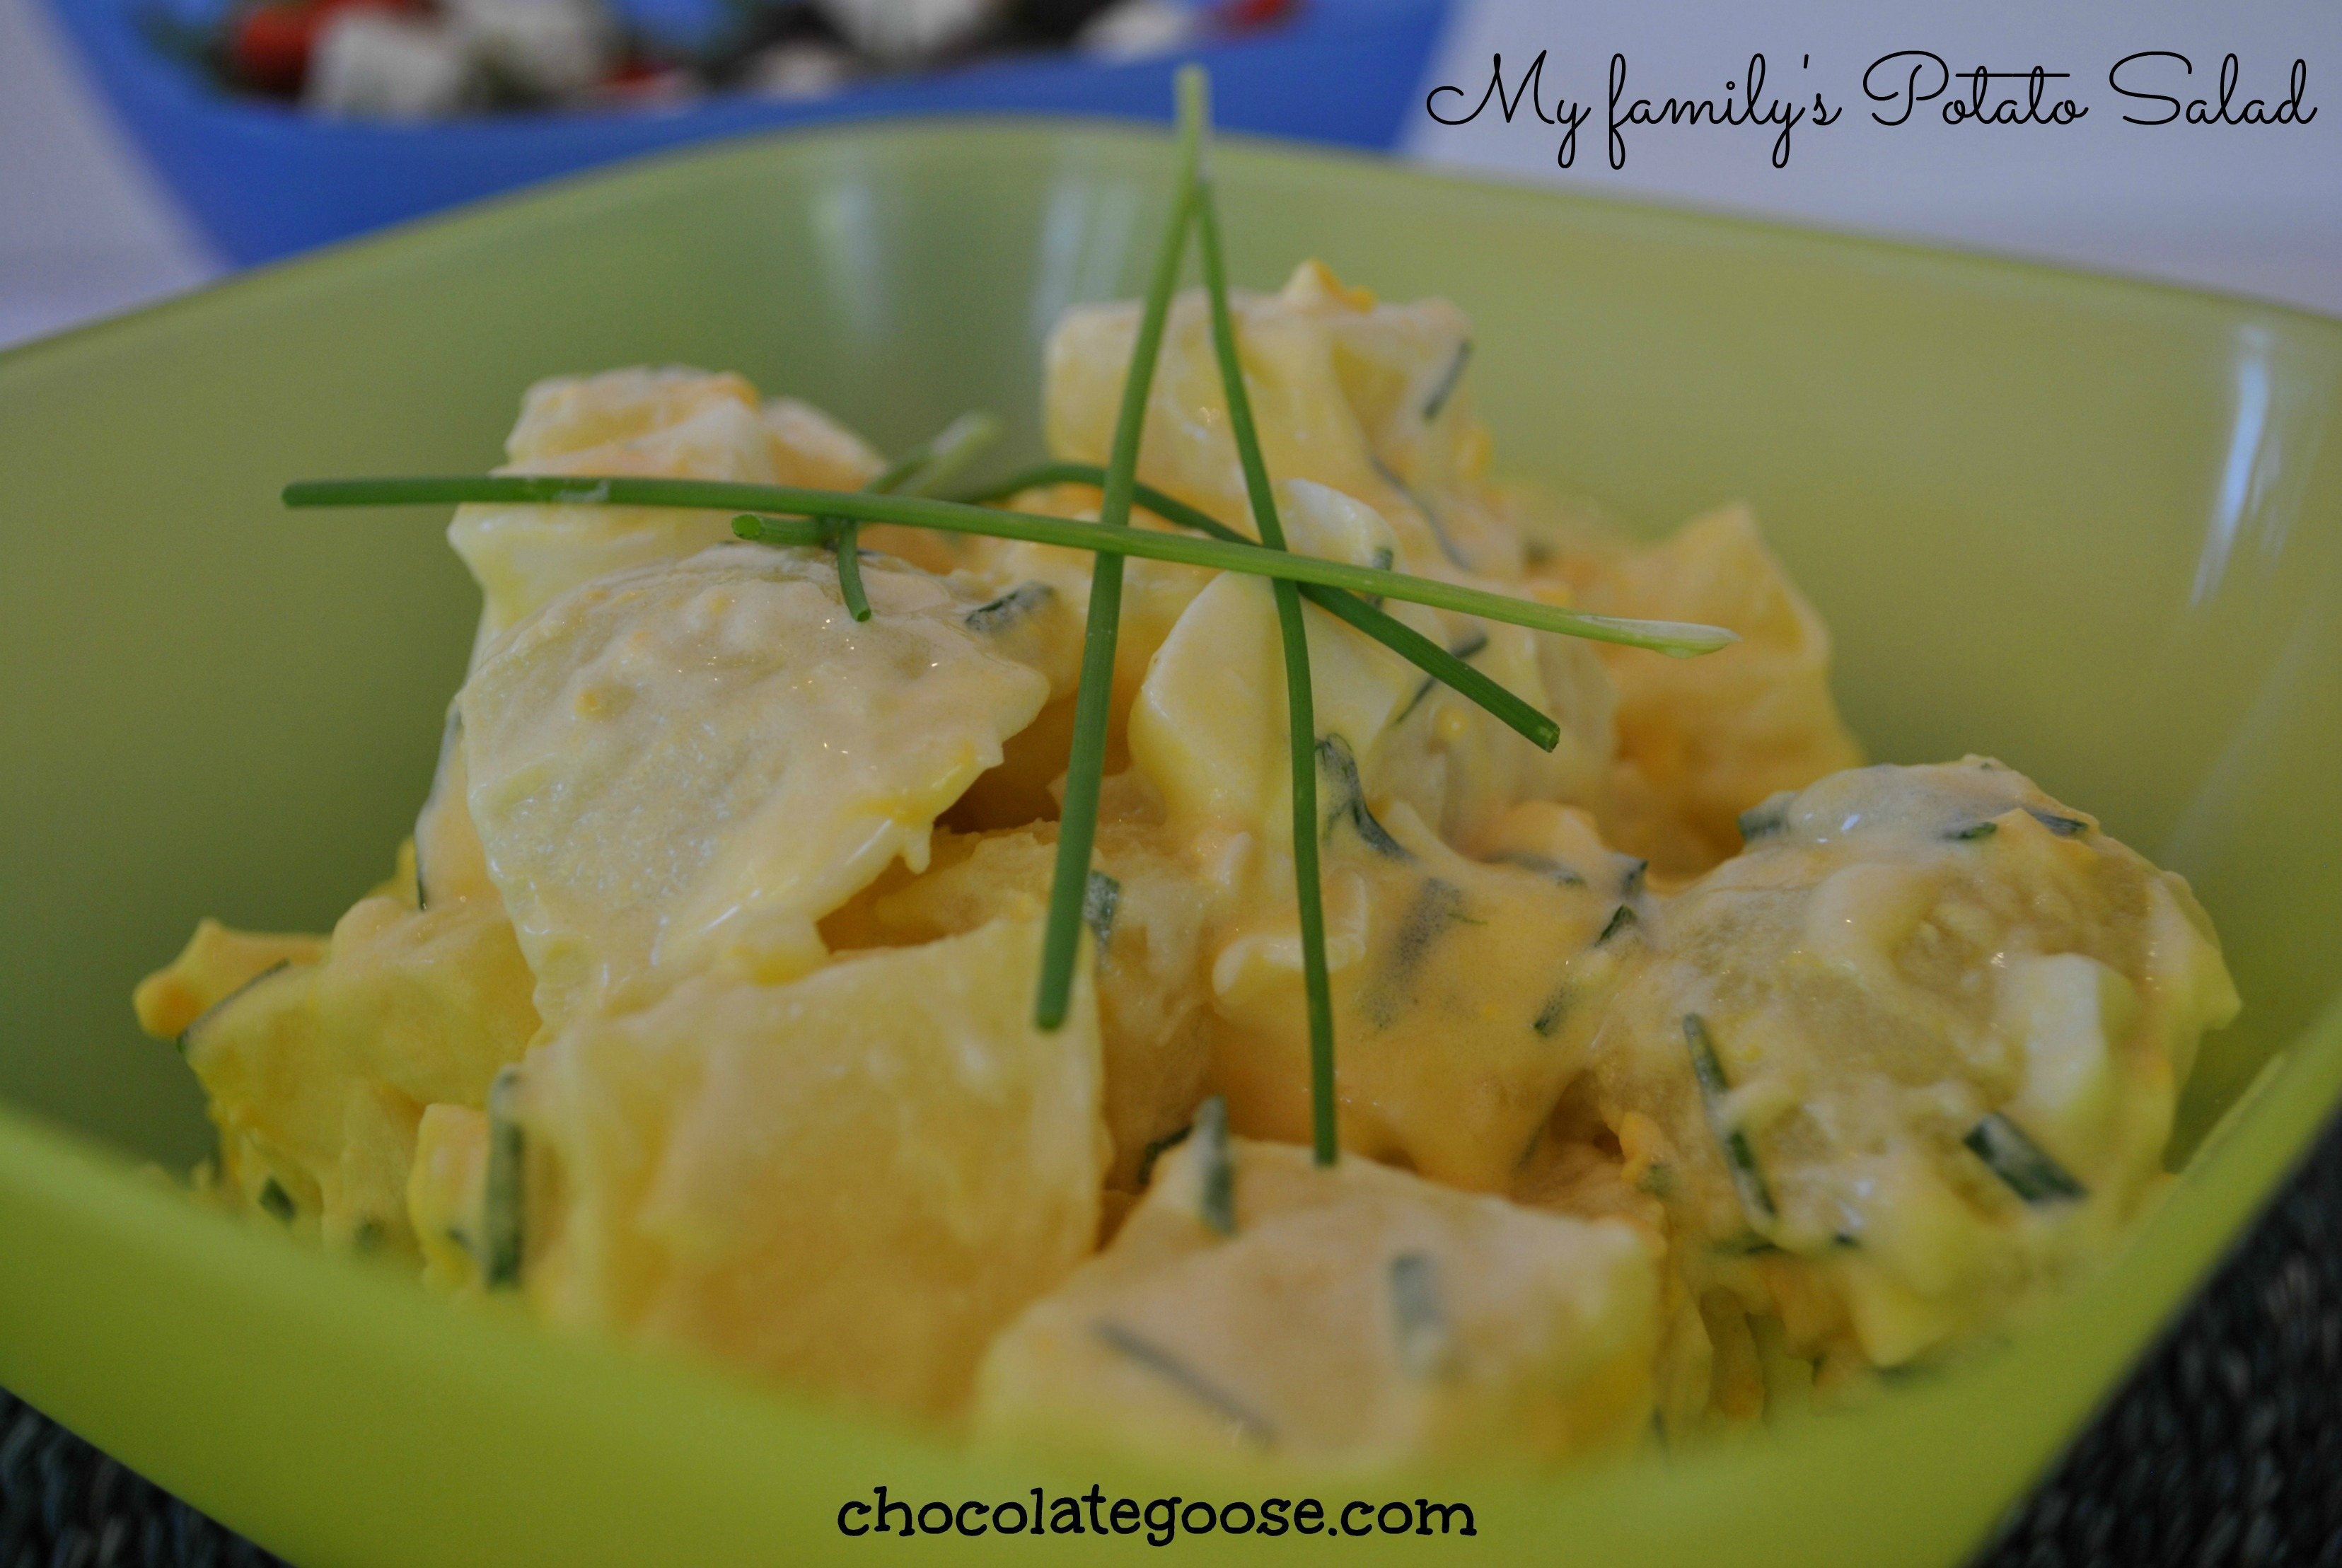 Good old traditional South African Potato Salad